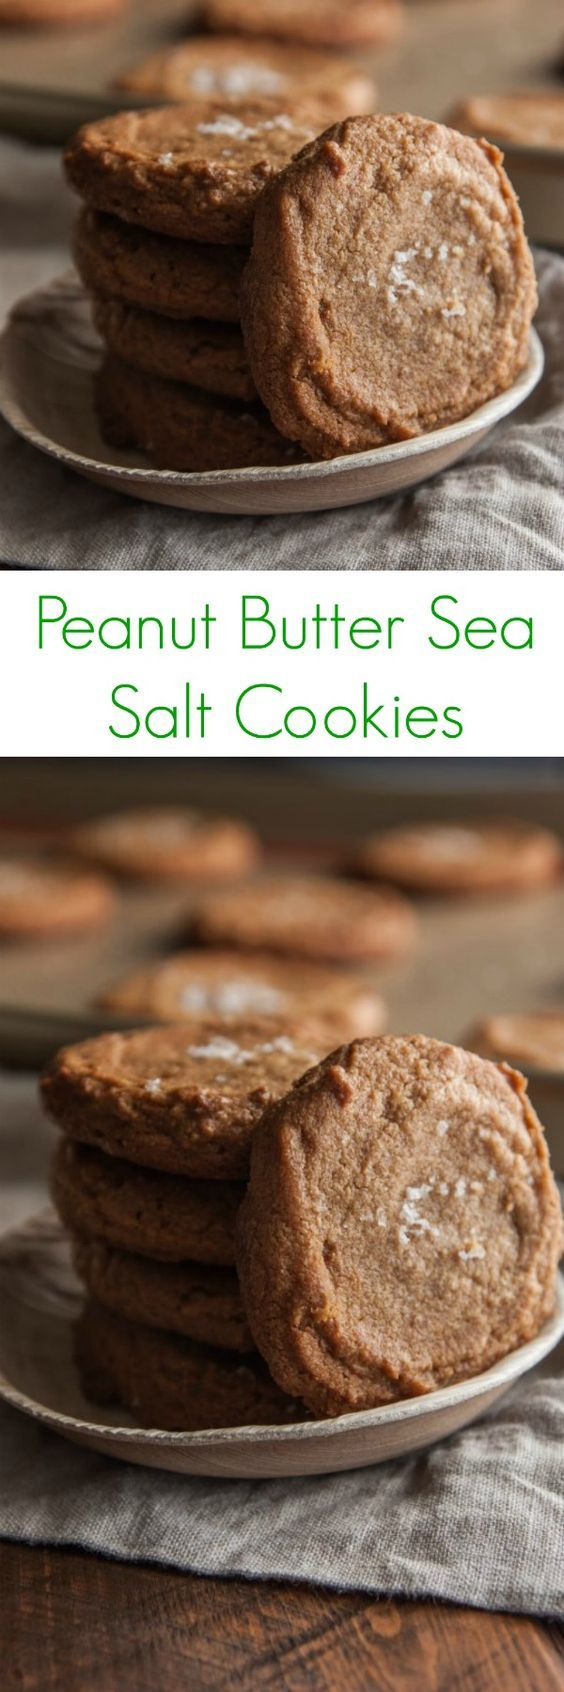 Peanut Butter Sea Salt Cookies - Made with just five ingredients, these sweet, flourless peanut butter cookies have a slightly chewy center, topped with a hint of sea salt. GF